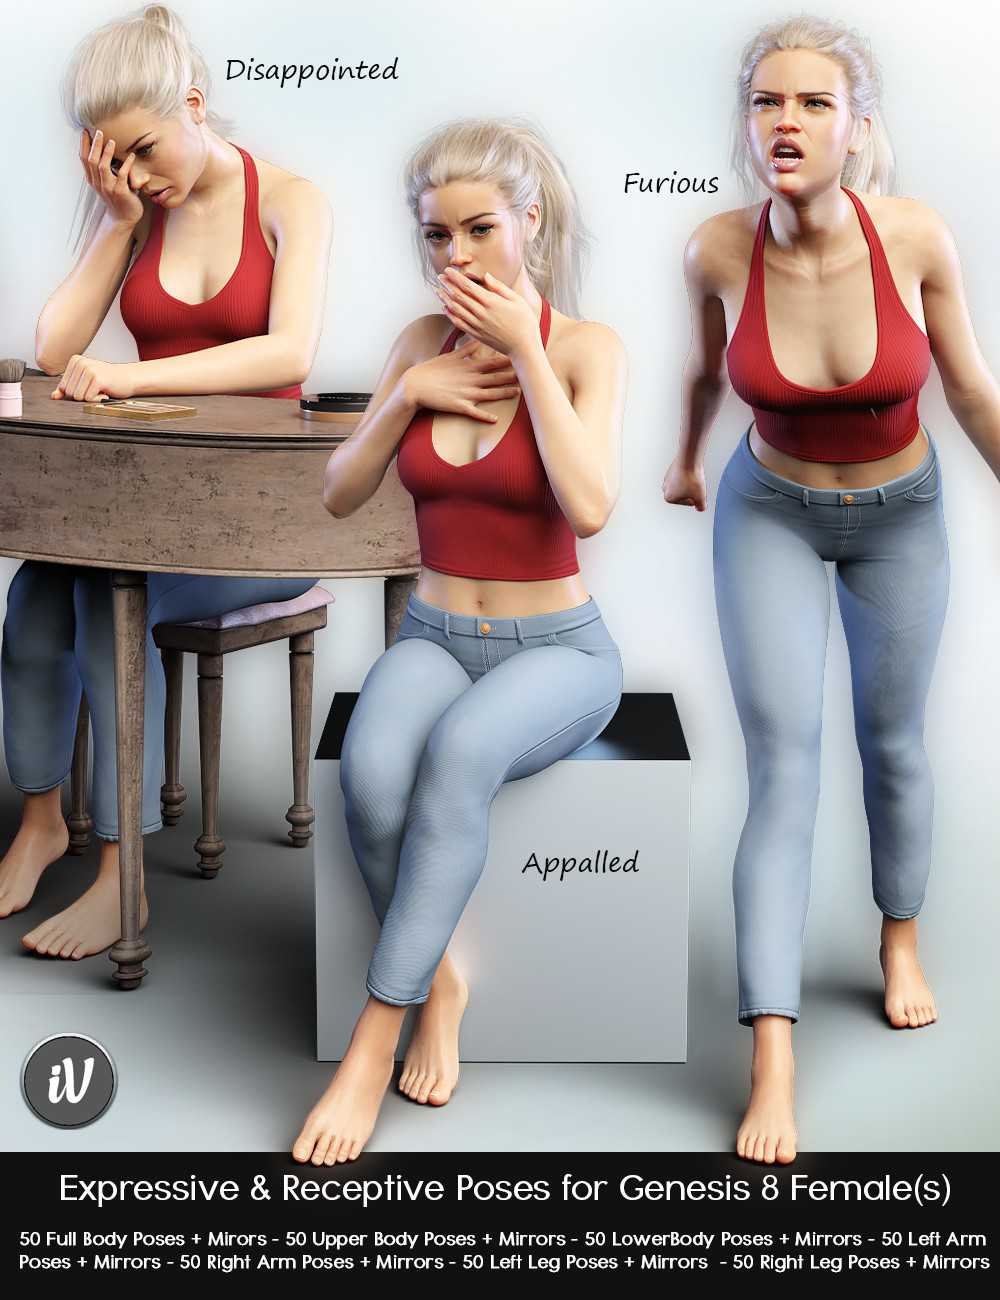 iV Expressive & Receptive Poses For Genesis 8 Female(s)